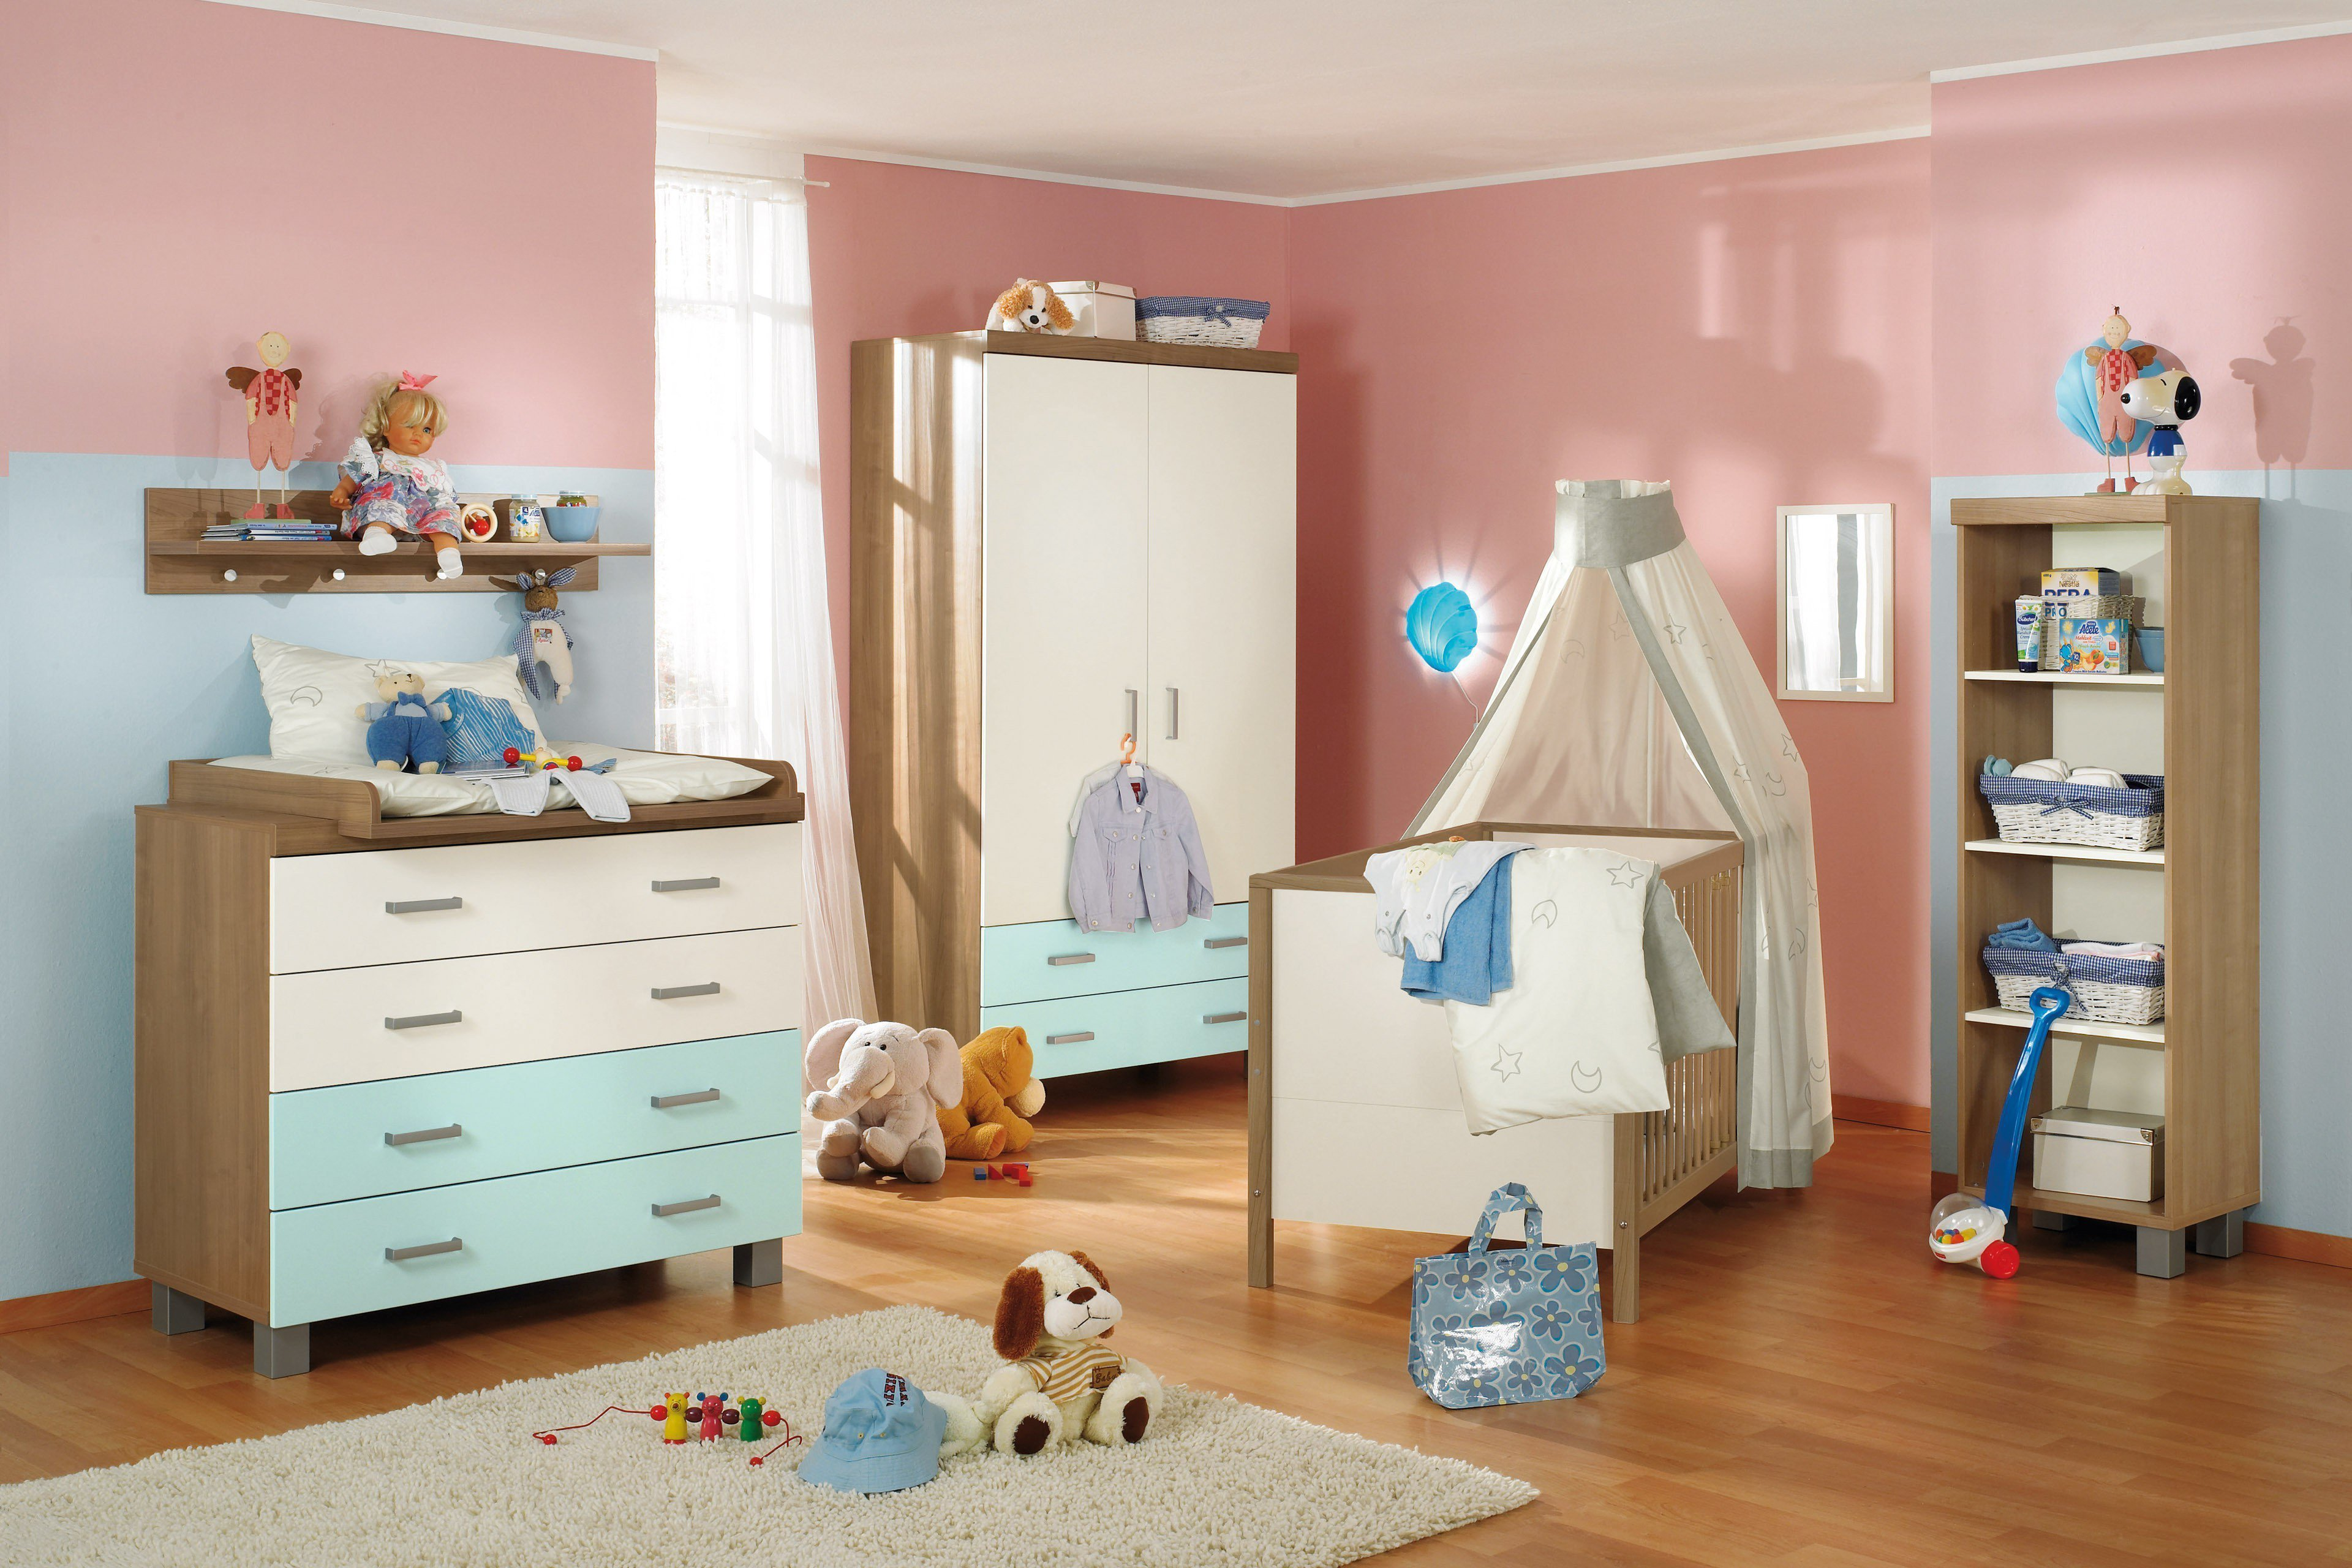 paidi babyzimmer leo kirsche ecru bleu m bel letz ihr online shop. Black Bedroom Furniture Sets. Home Design Ideas